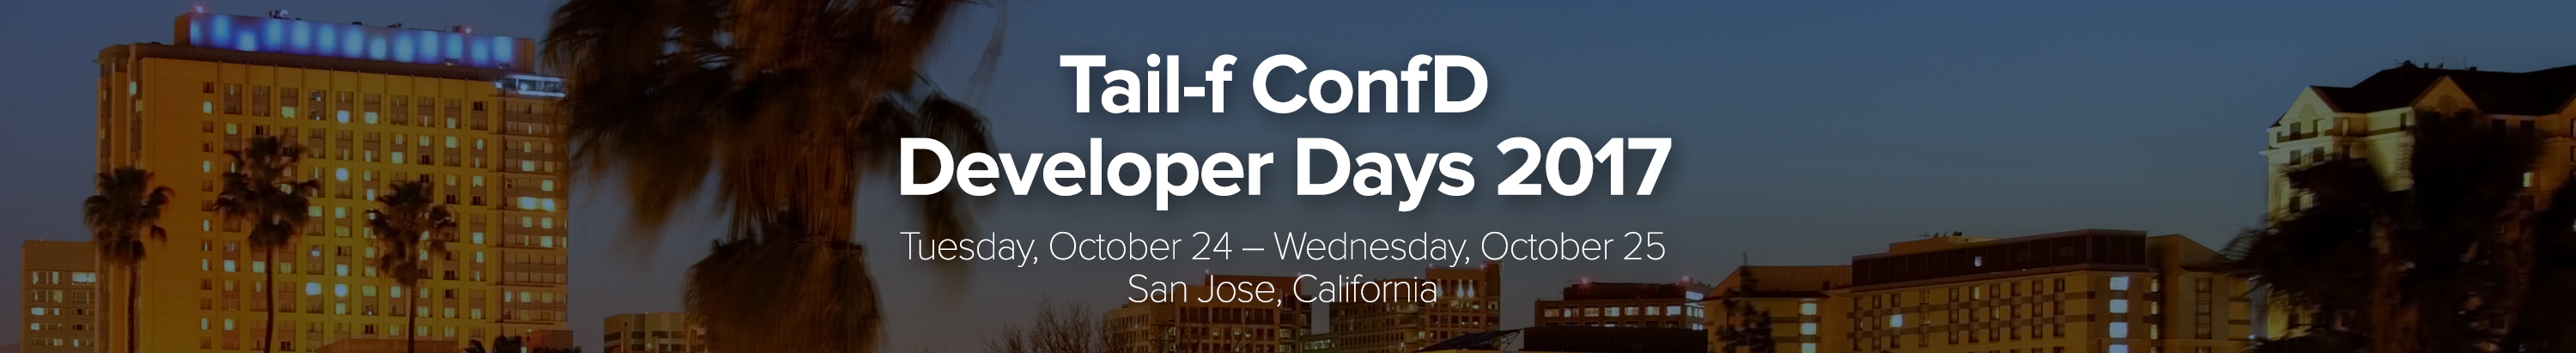 ConfD Developer Days 2017